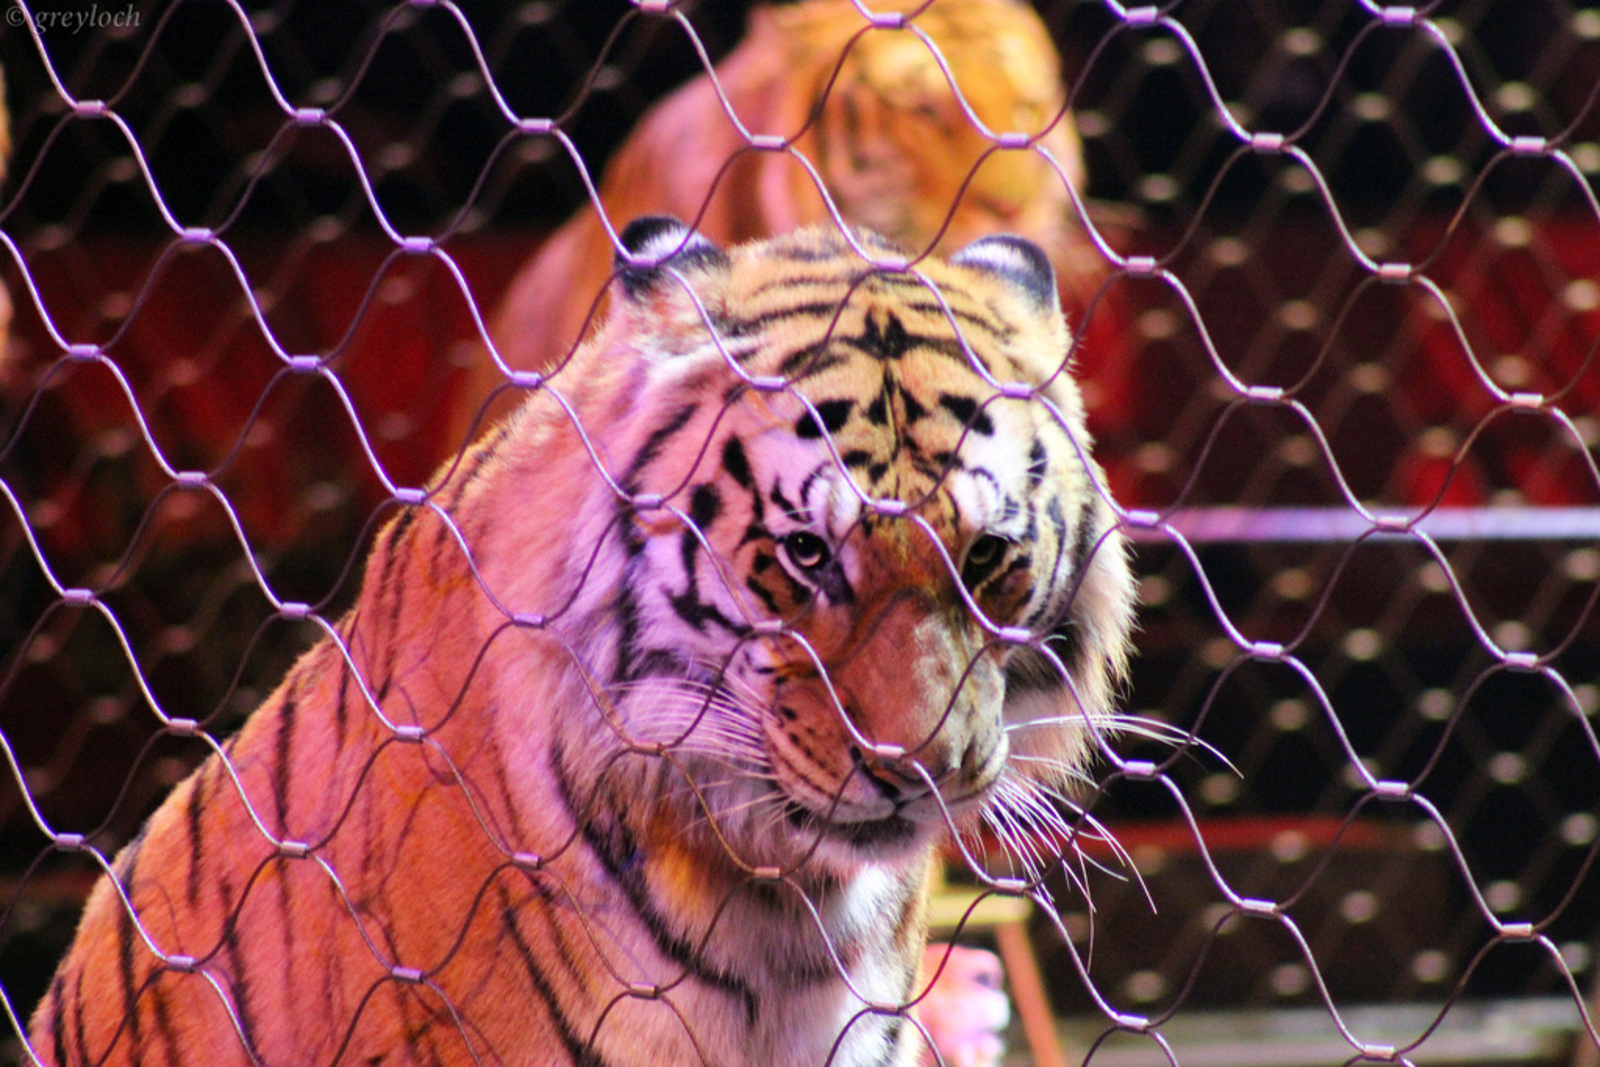 8 Reasons Why There is No 'Fun' in Animal Circuses